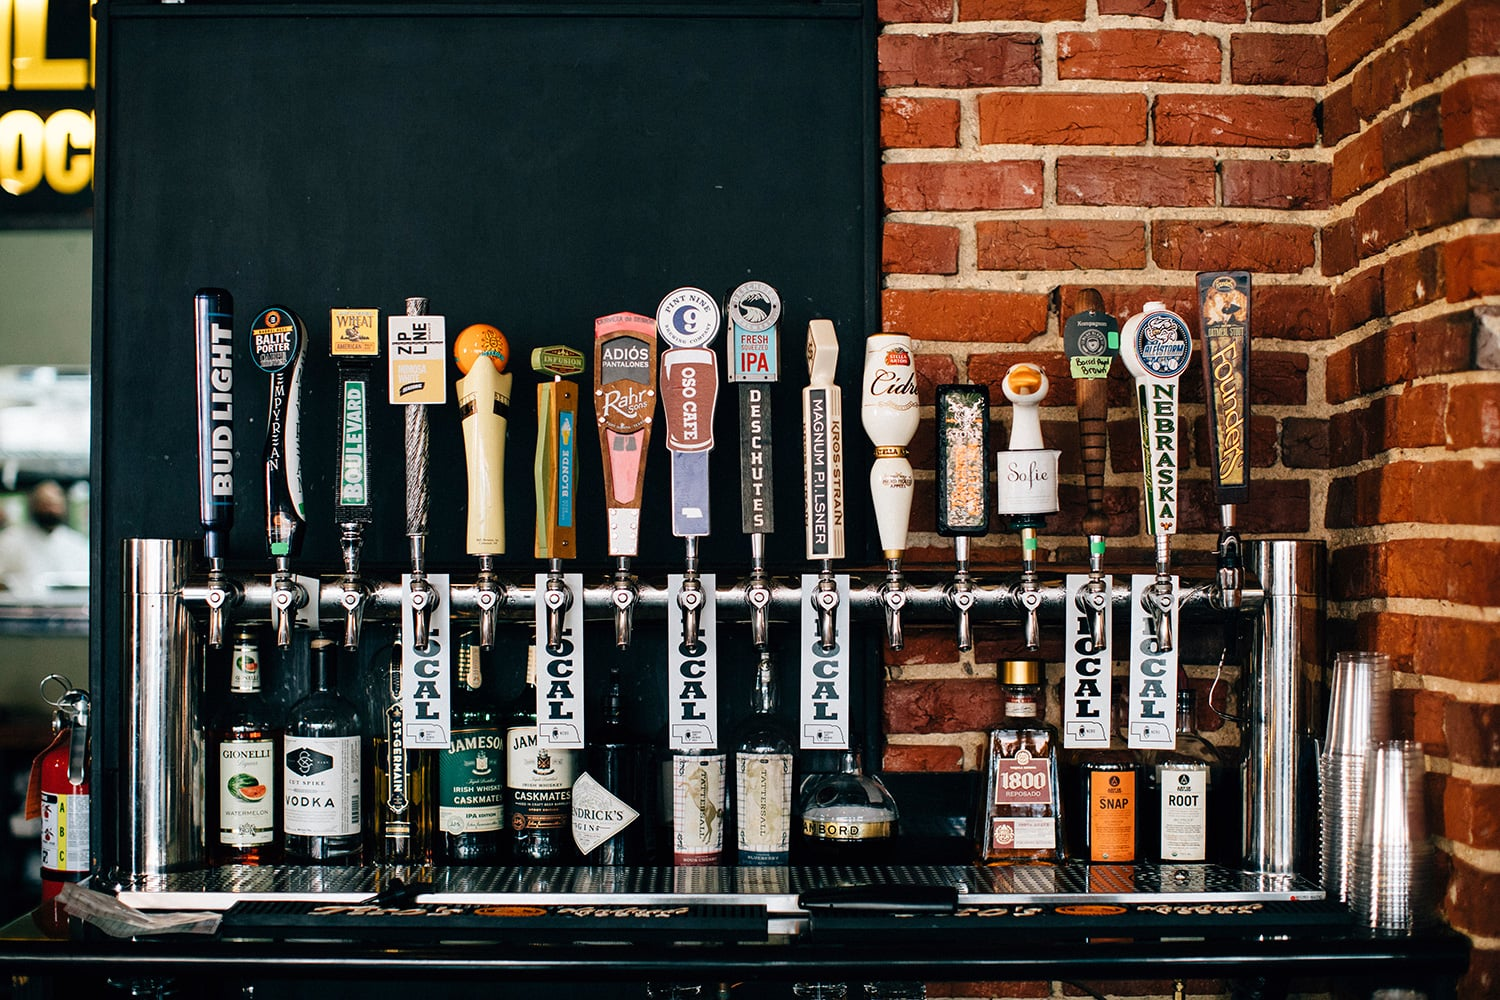 beers-on-tap